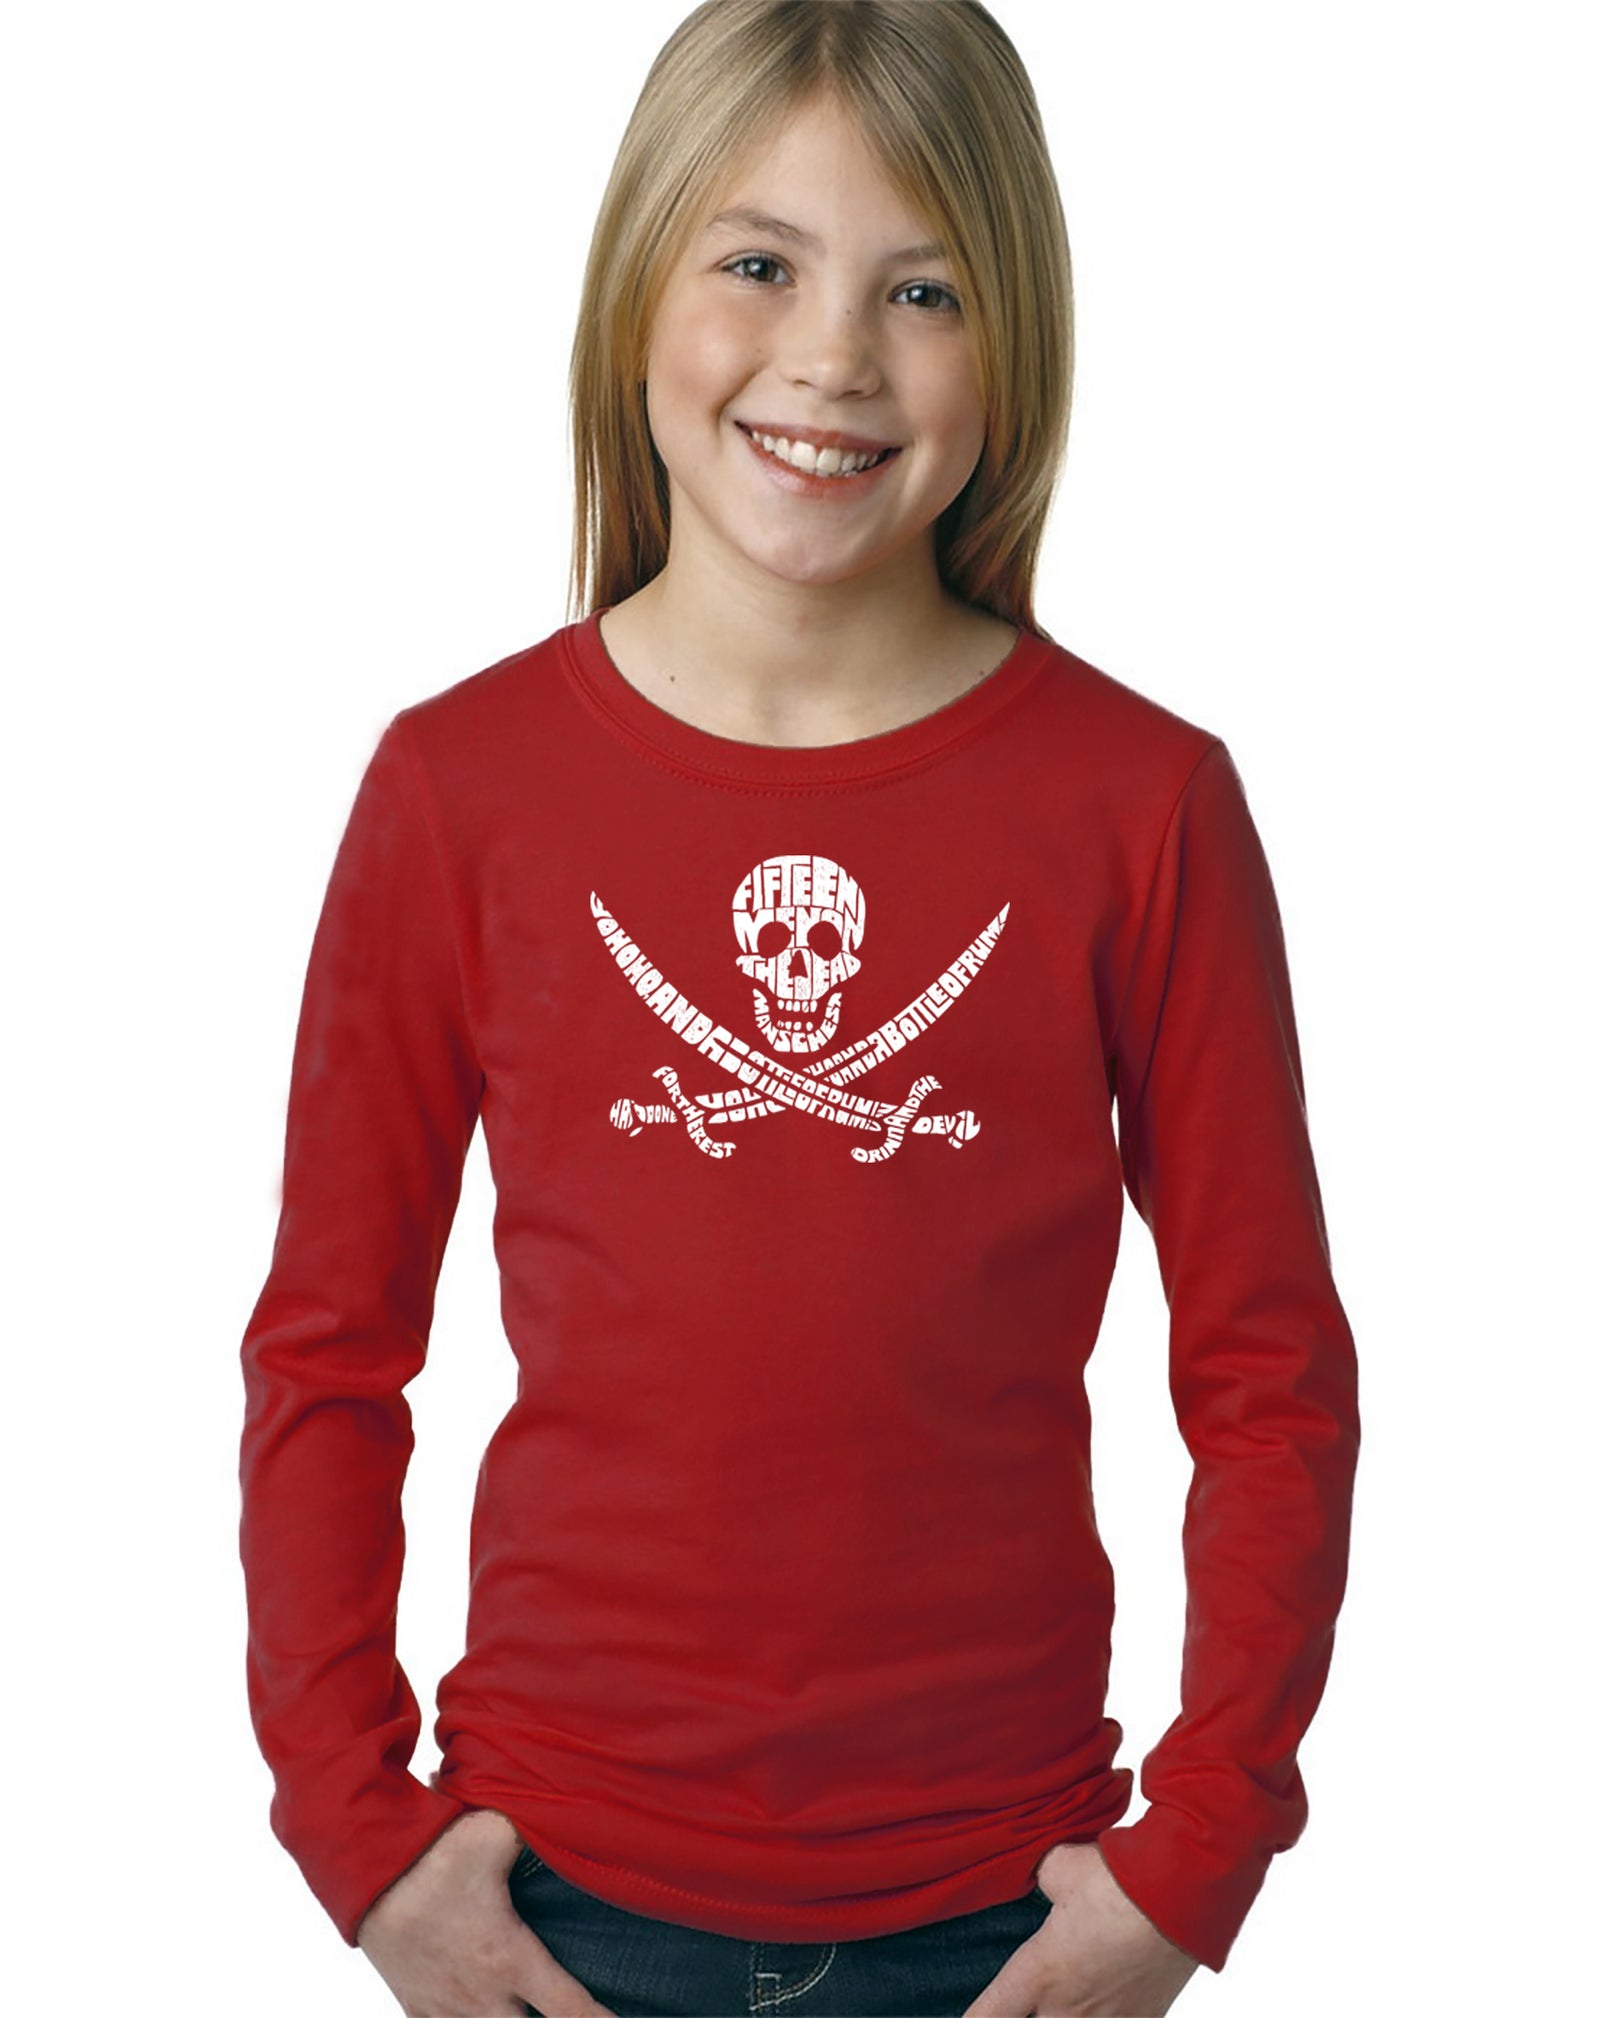 Girl's Long Sleeve - Lyrics To A Legendary Pirate Song